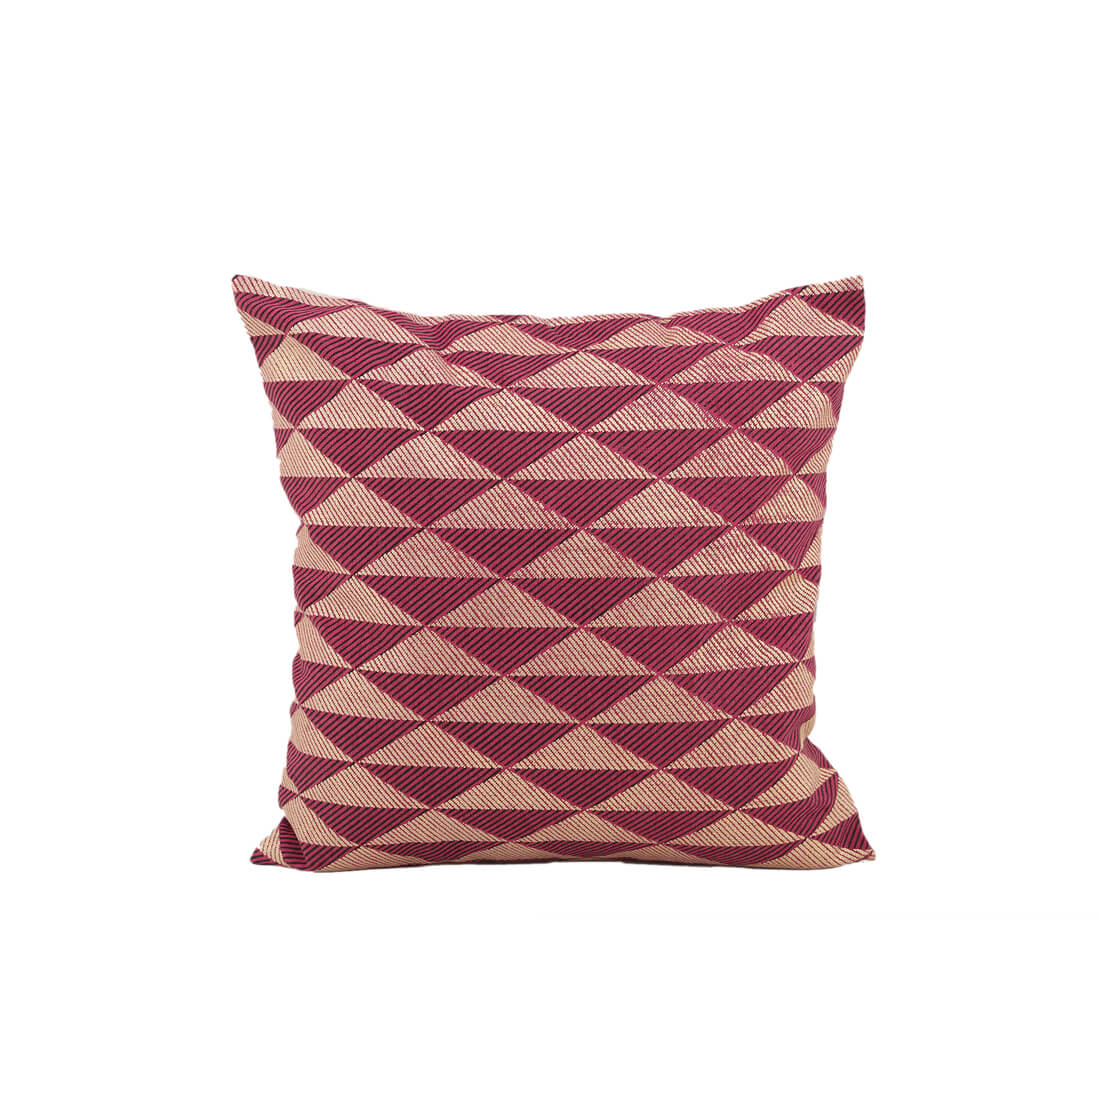 Azul Berry Cotton Cushion Covers in Berry Colour by Living Essence